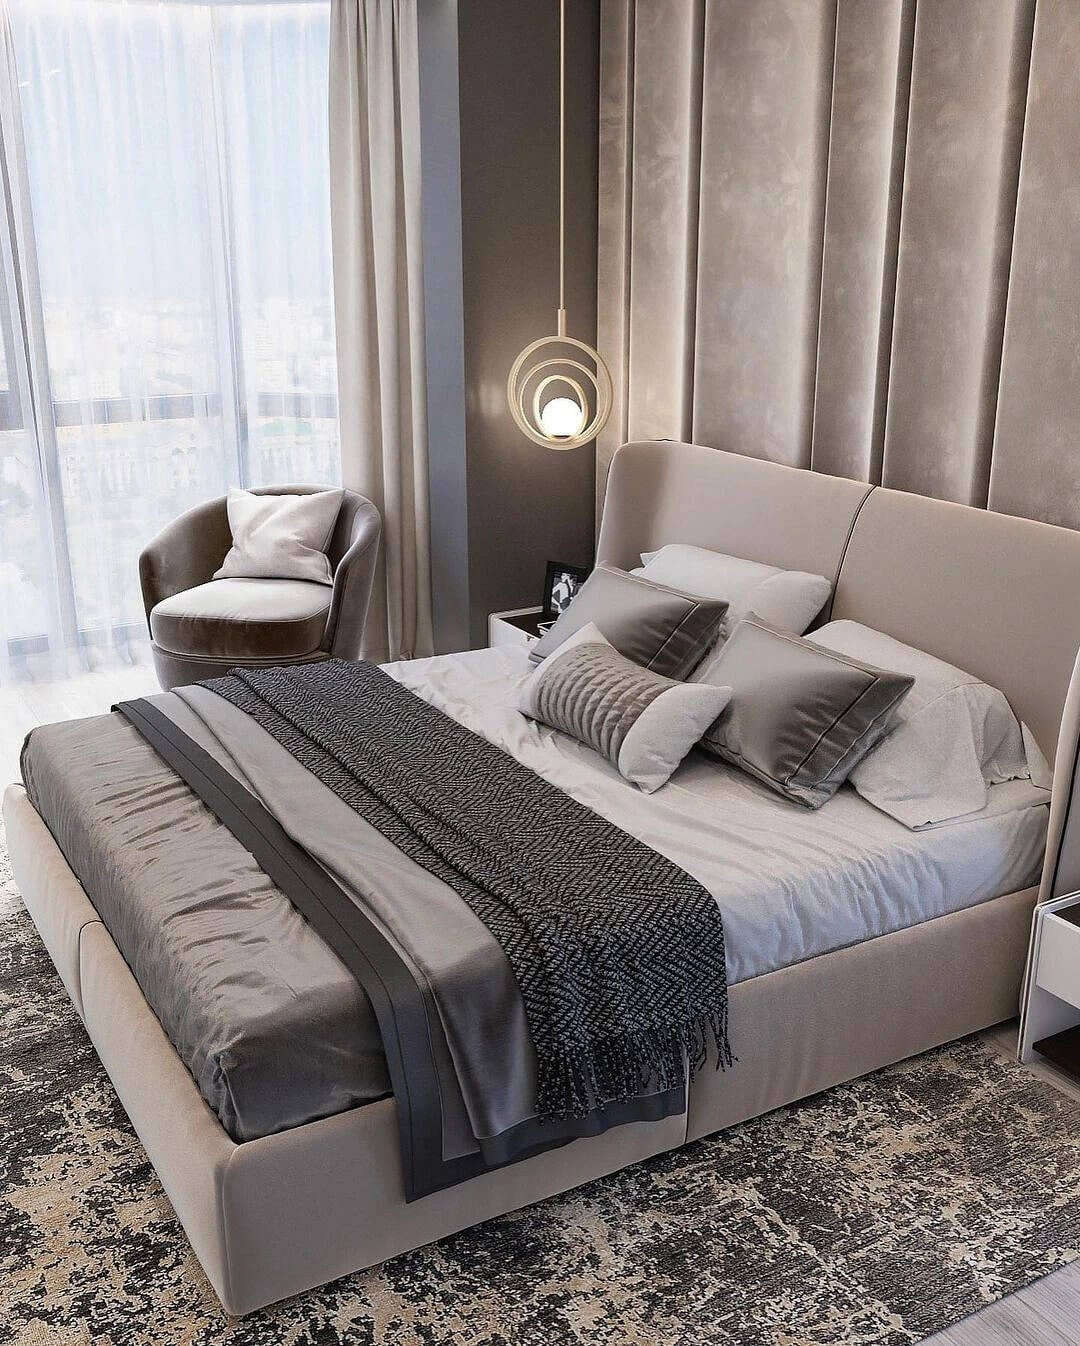 Interior in creamy shades with sophisticated textiles